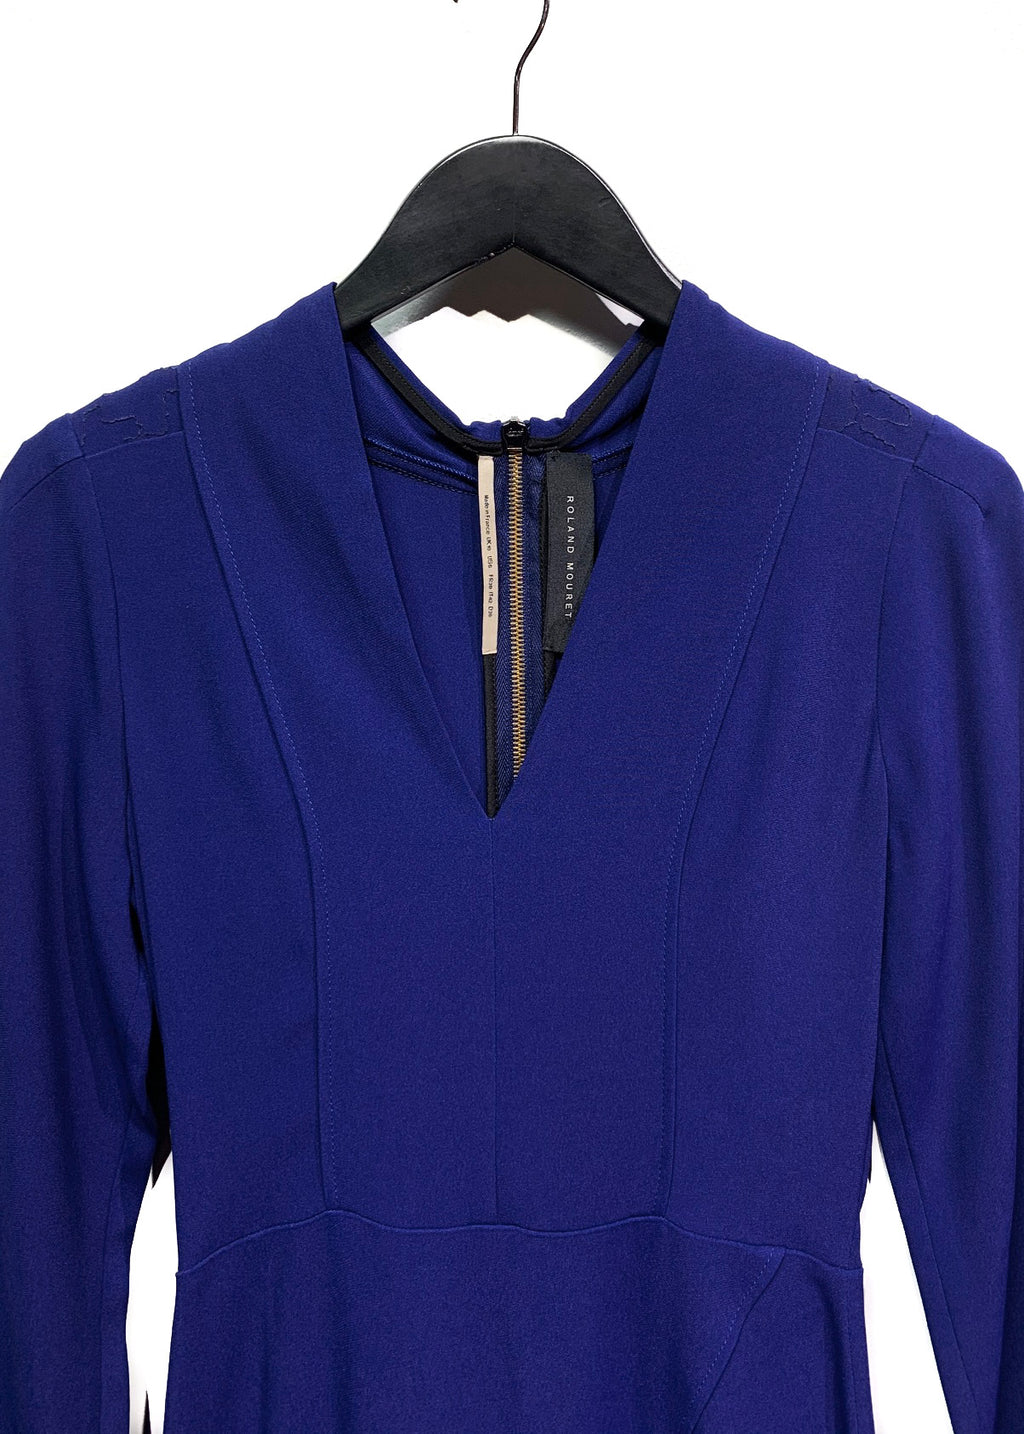 Roland Mouret Cobalt Midi Dress